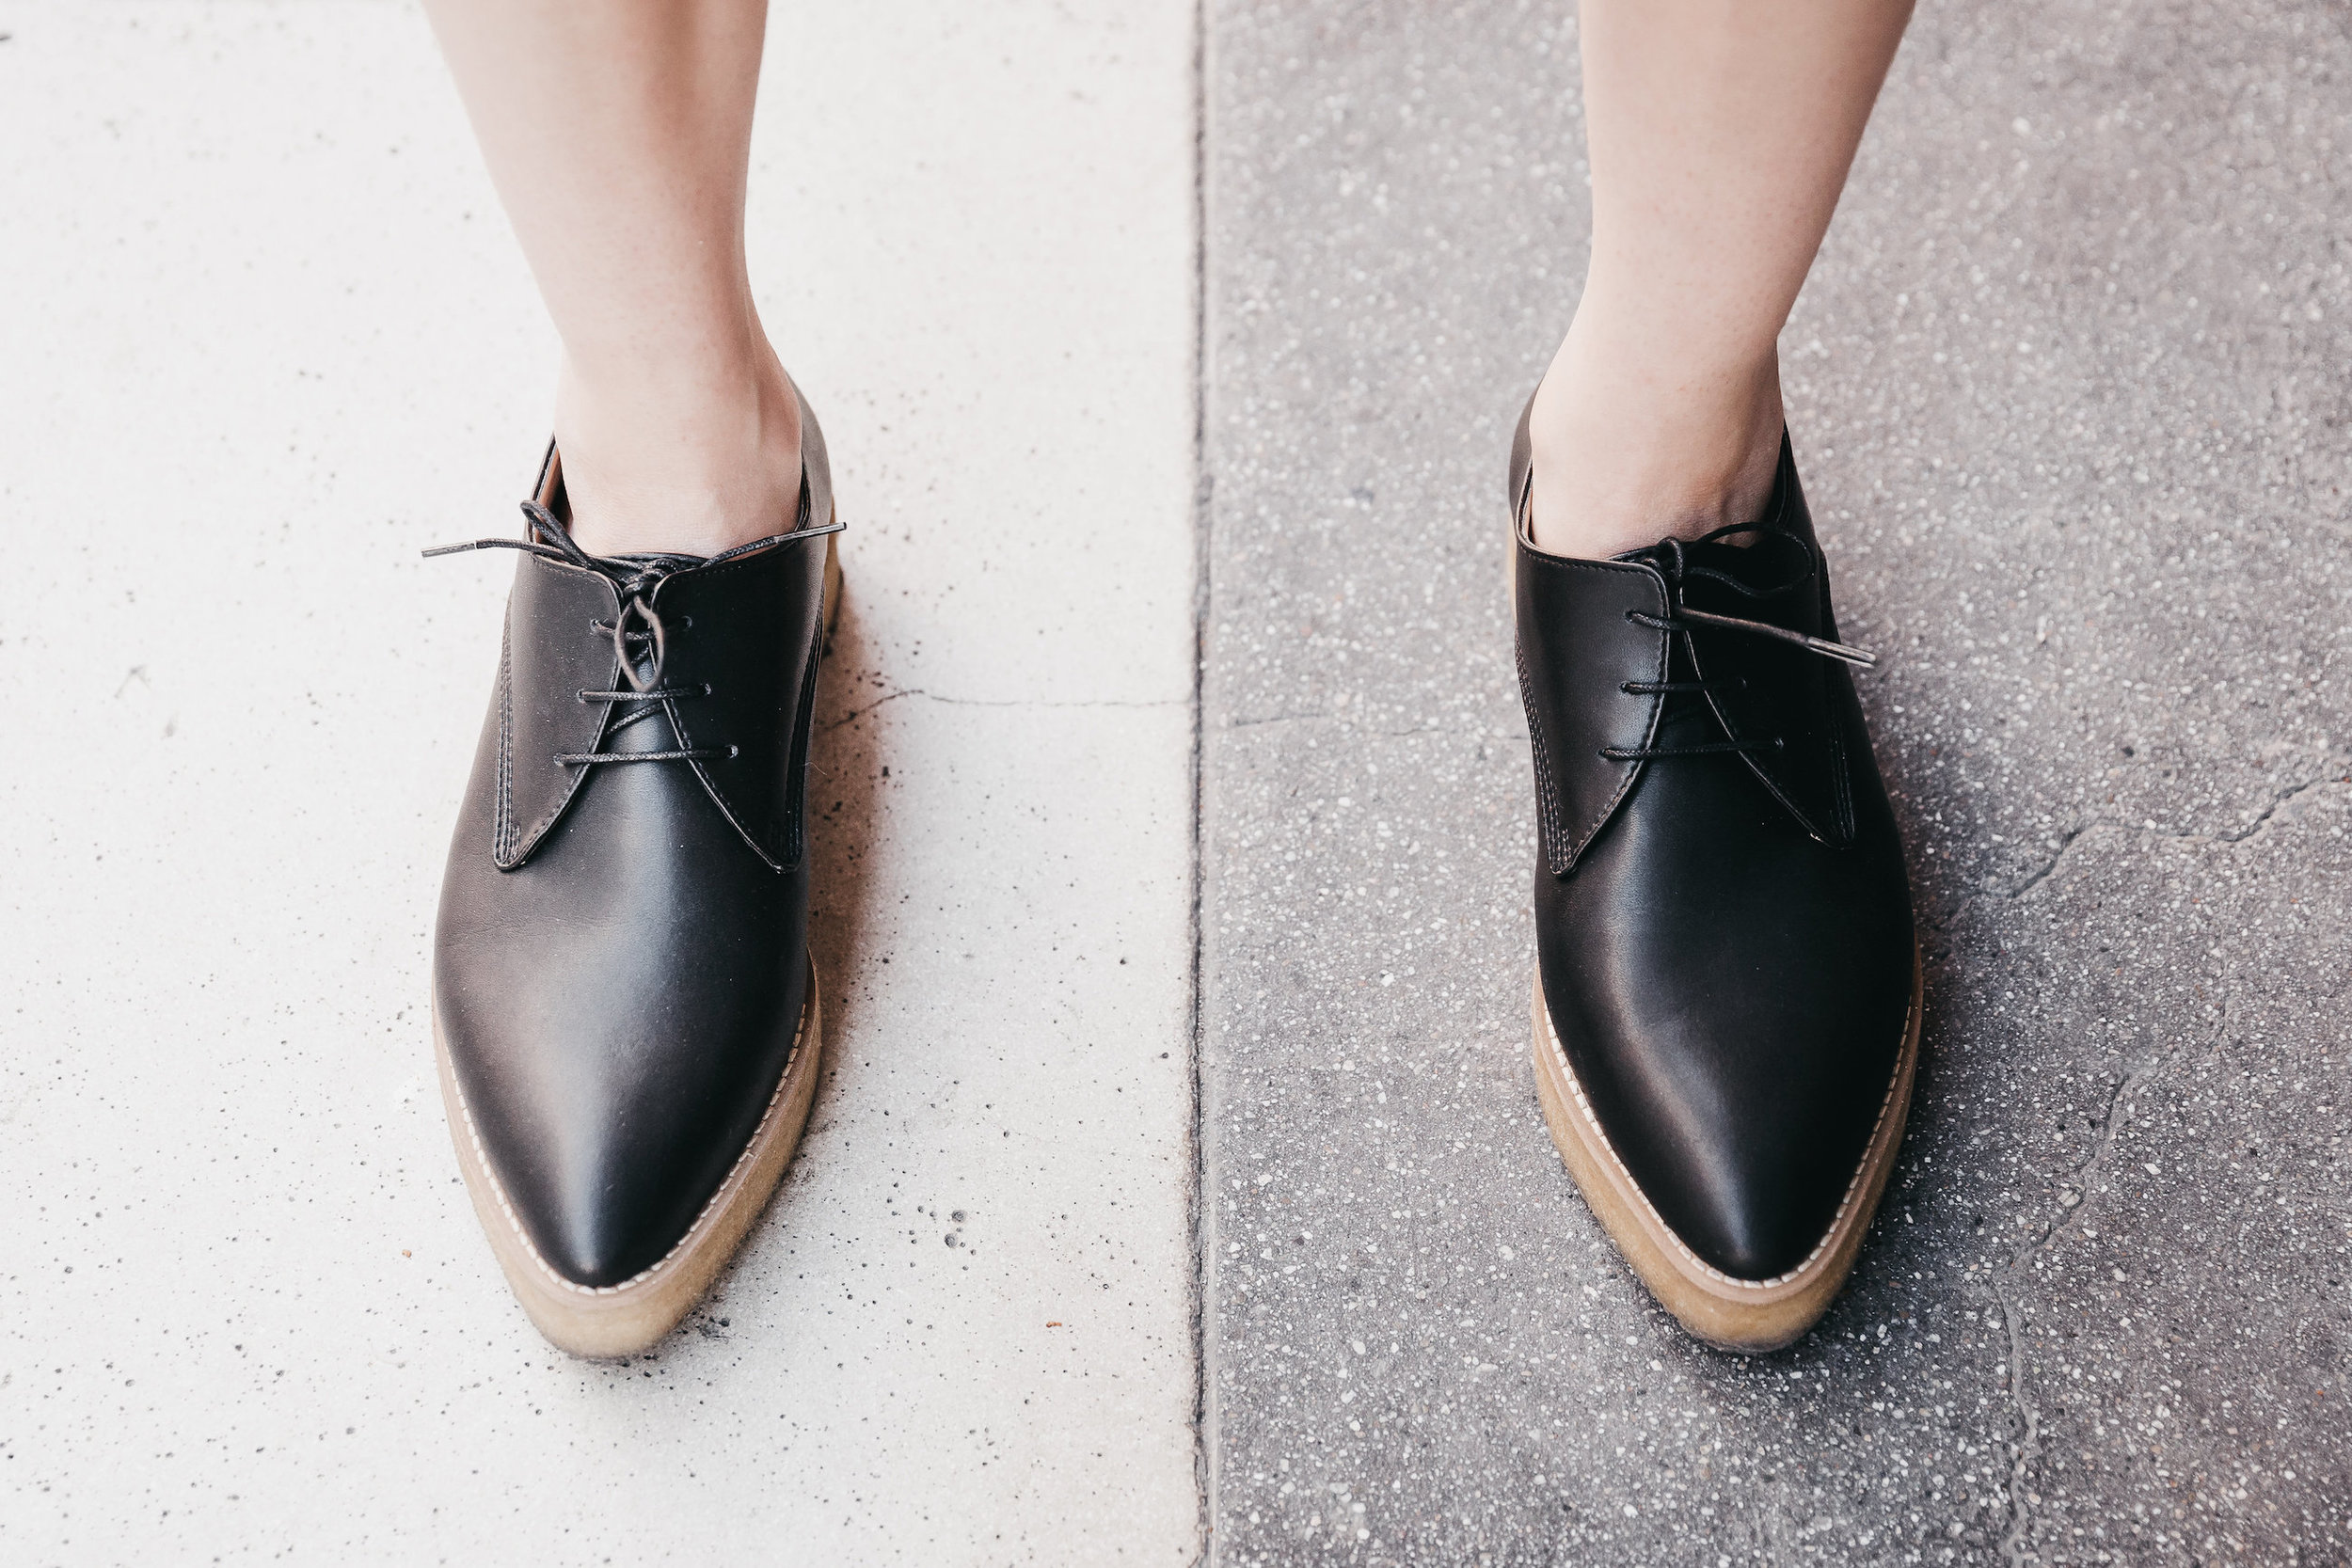 Vegan shoes // A Week Of Bright & Bold Ethical Outfits With Michelle Chavez From Michelle For Good on The Good Trade